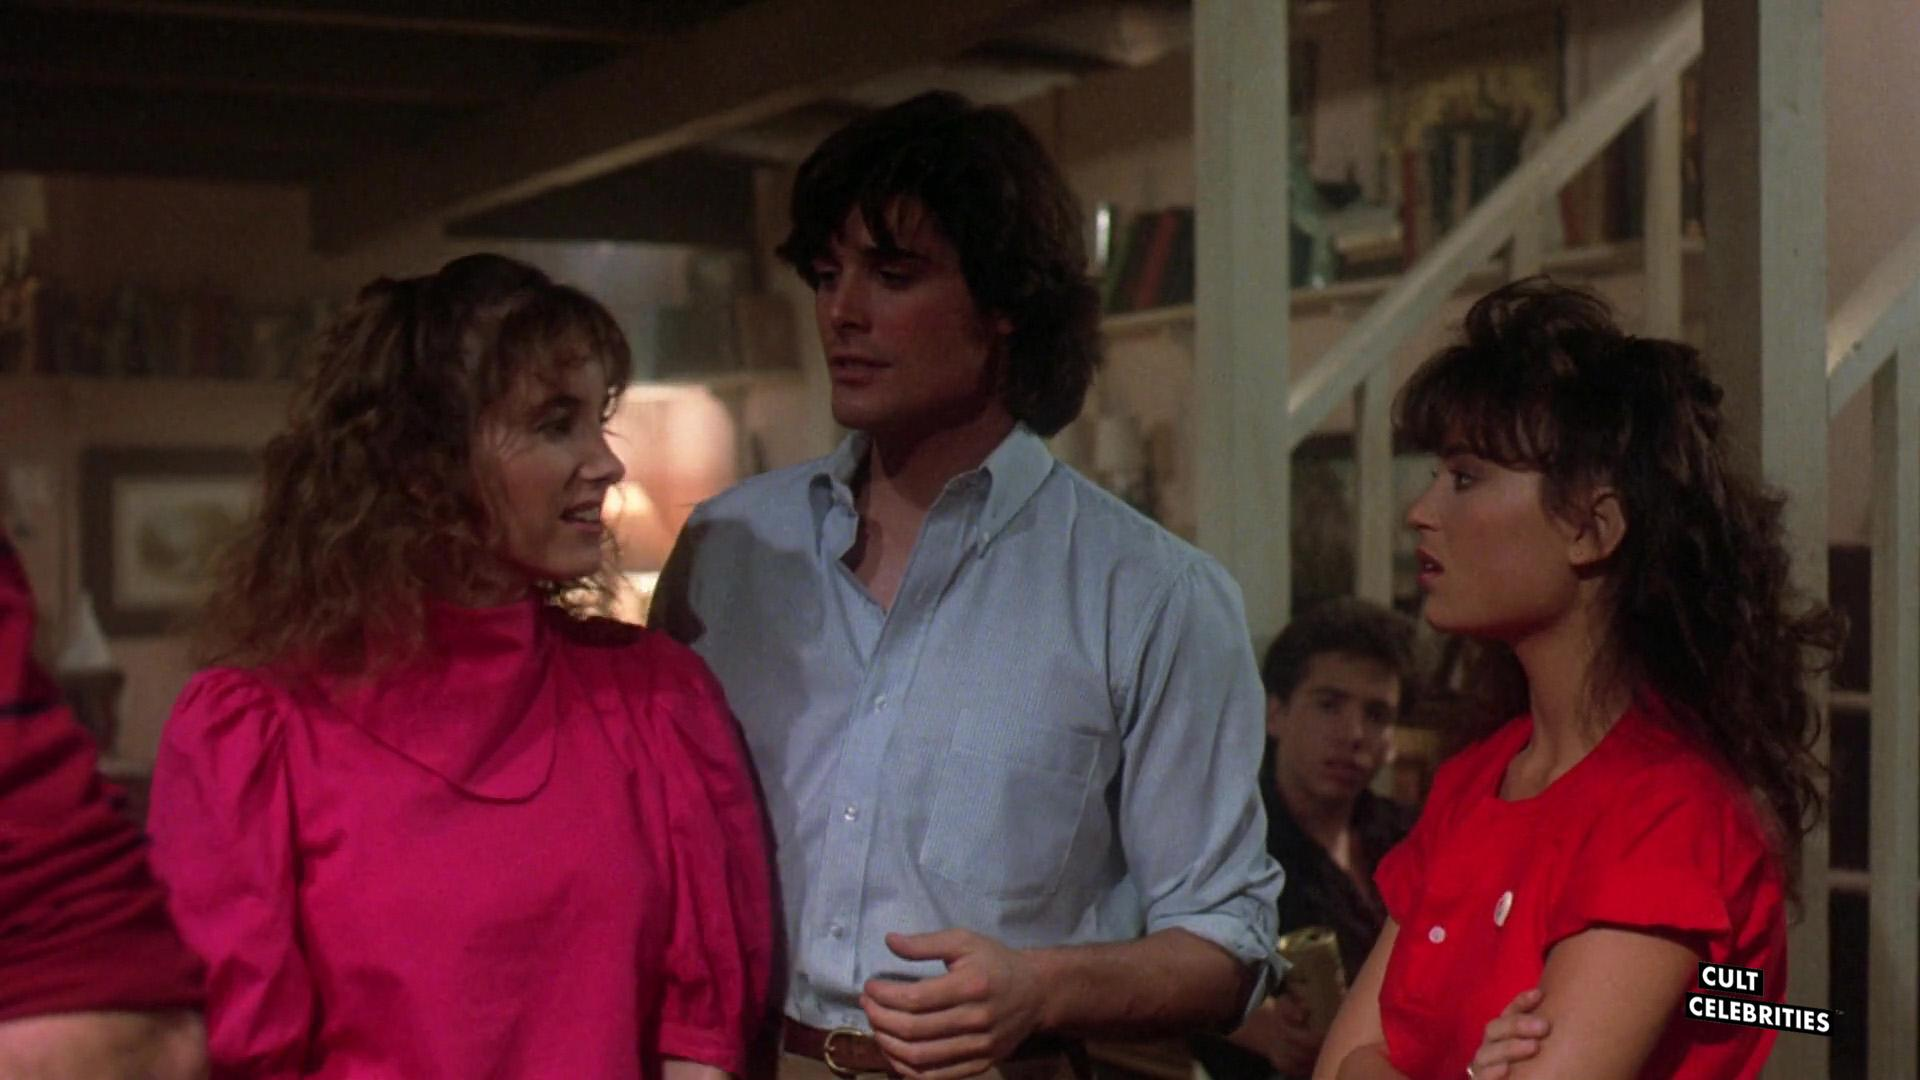 Barbara Howard, Peter Barton and Judie Aronson in Friday the 13th: The Final Chapter (1984)